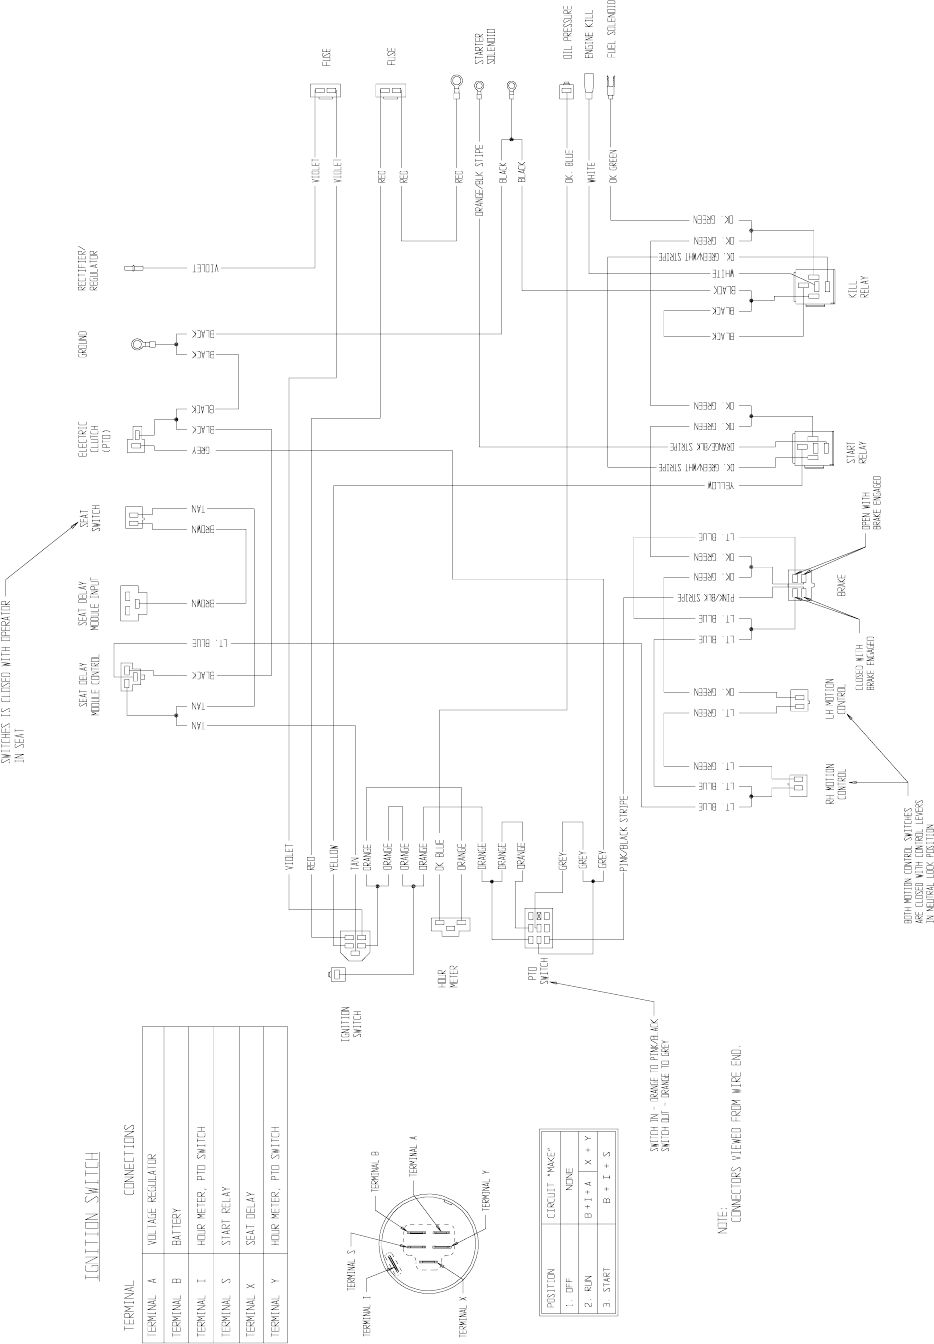 Awesome Pto Switch Wiring Diagram Contemporary - Electrical and ...